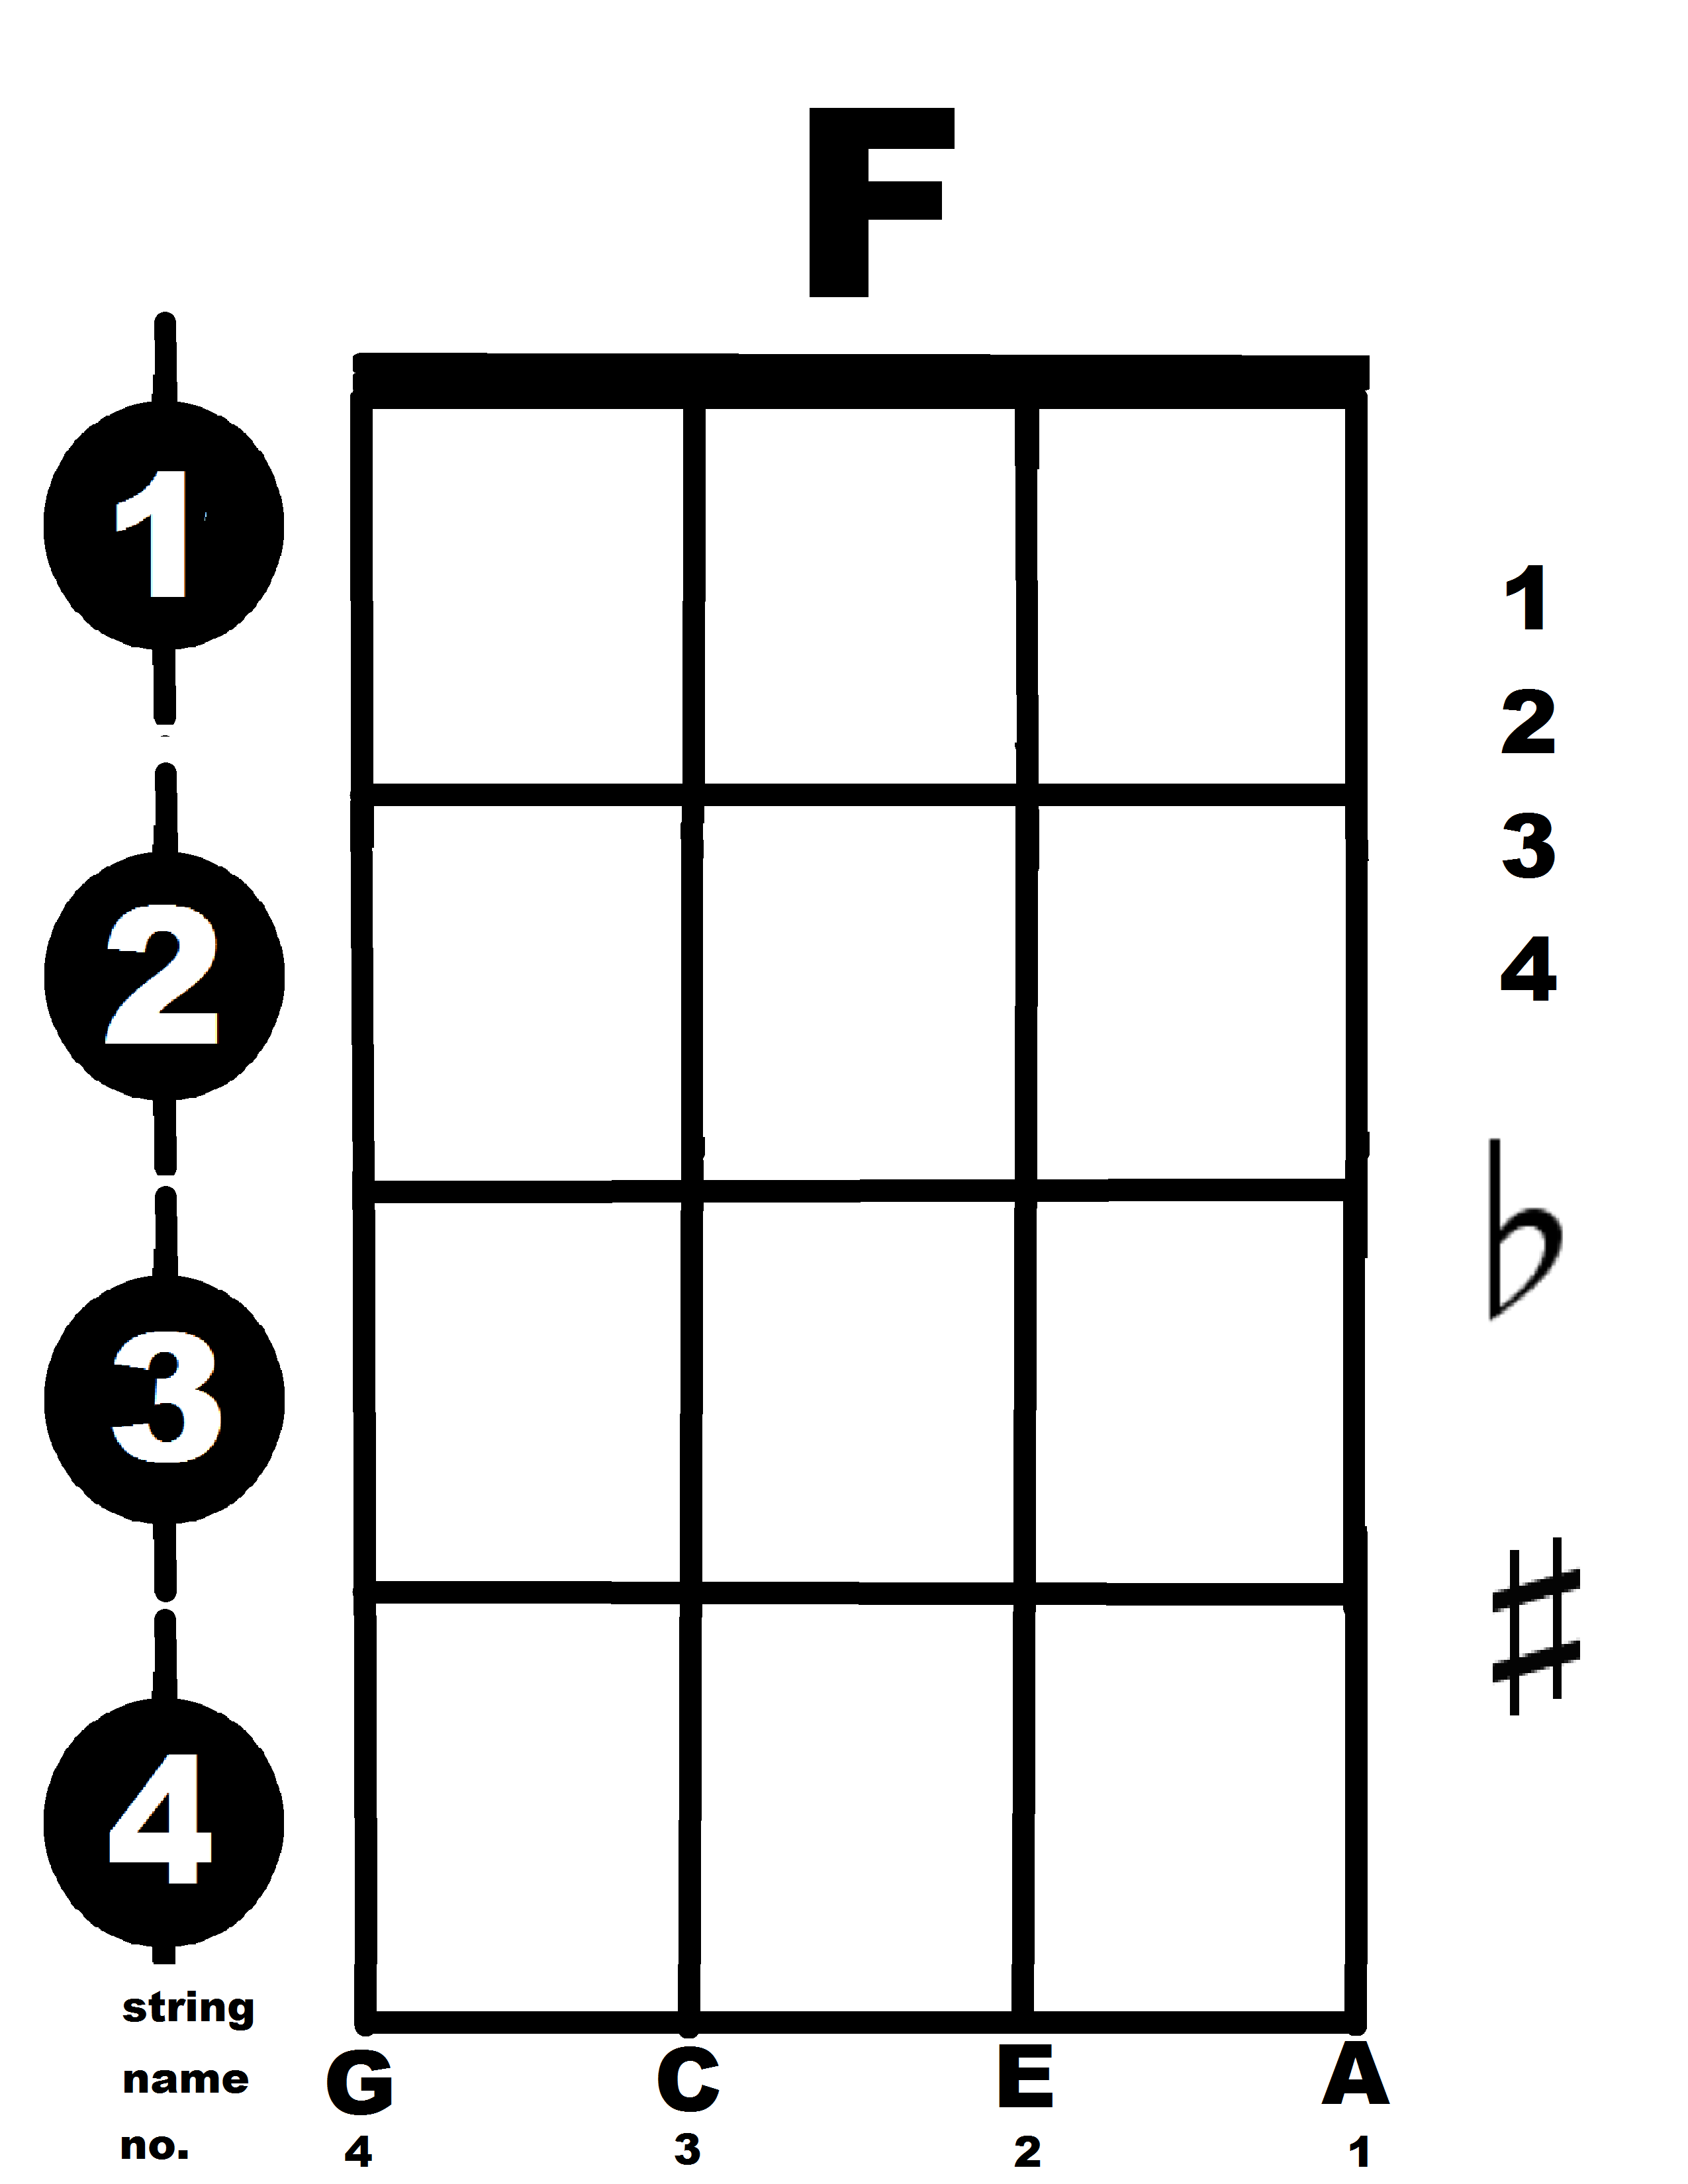 Sun city az ukulele club mentorship chord diagram template hexwebz Images